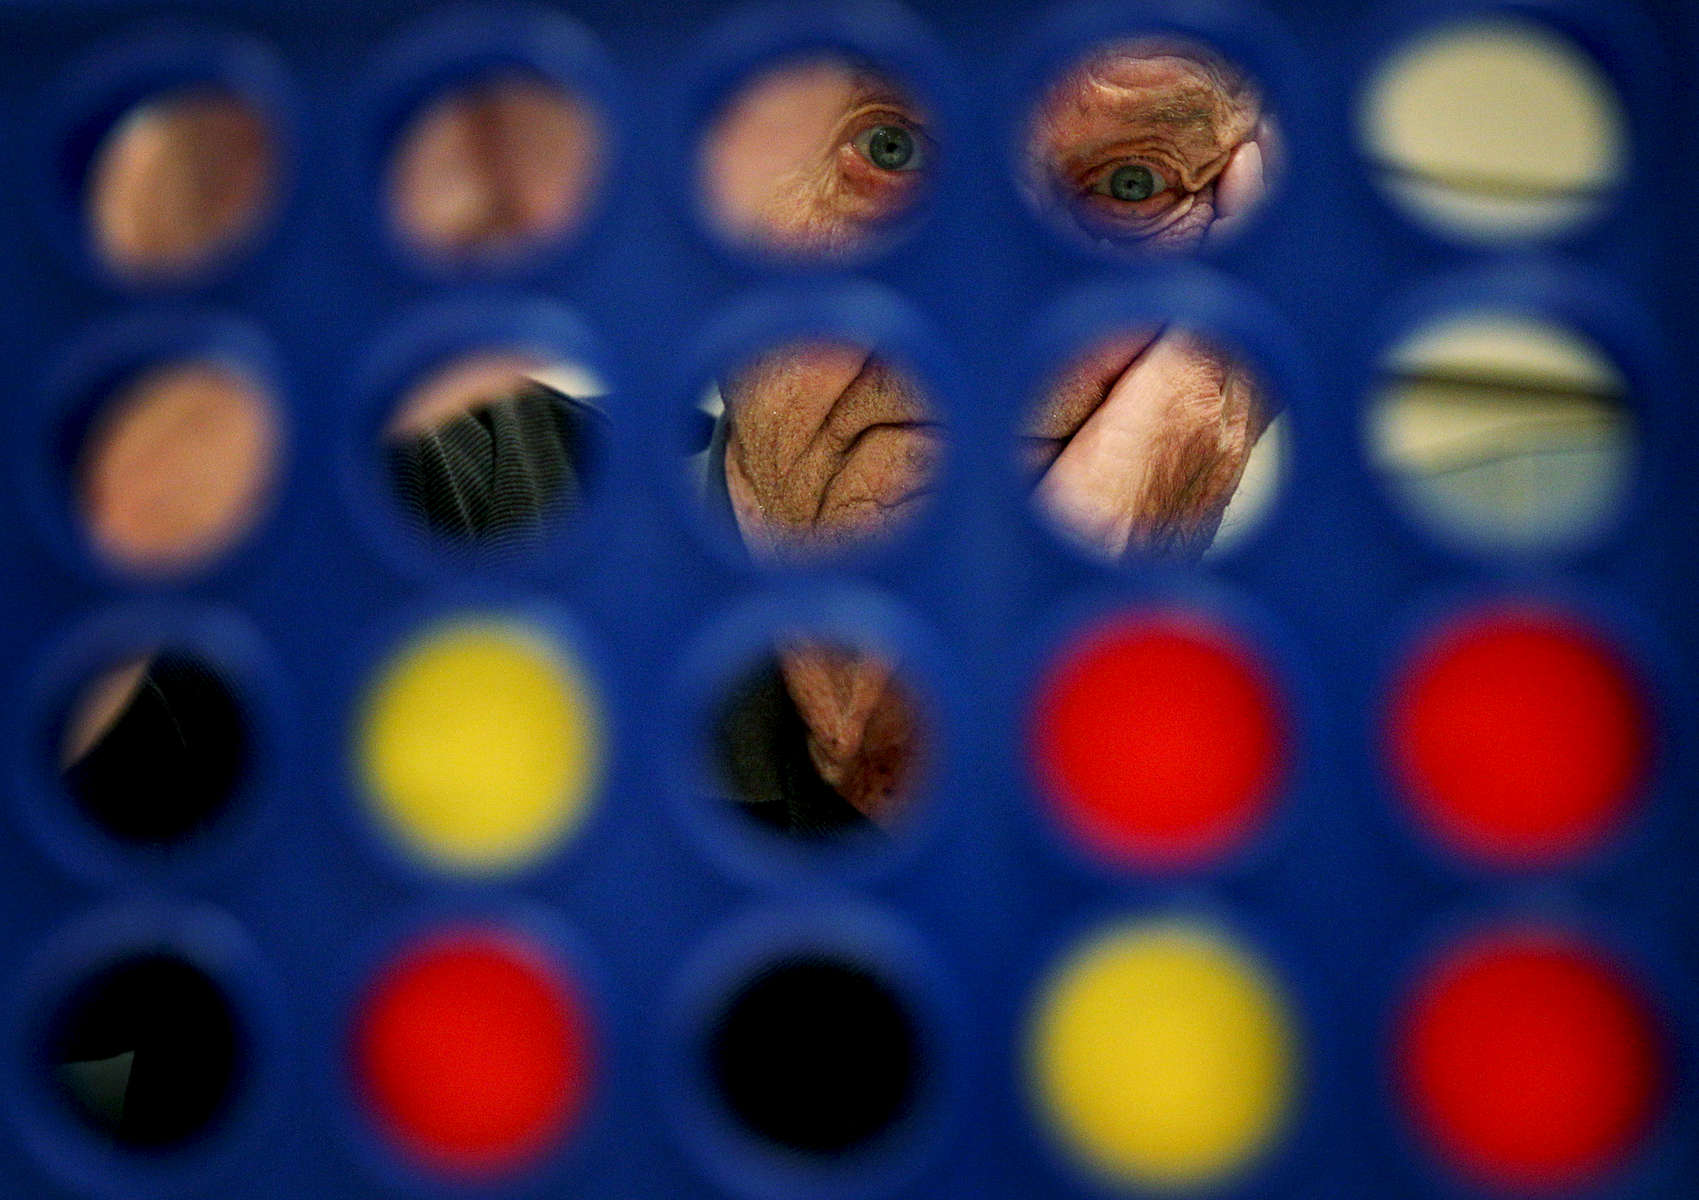 April 21, 2016 - Bill Schwan plays a game of Connect Four against Lauren Potter (not pictured) during the Creative Aging's fourth annual Senior Fun Day held at the Memphis Jewish Community Center. The event featured a variety of games and puzzles, ice cream, door prizes and free manicures. (Mike Brown/The Commercial Appeal)